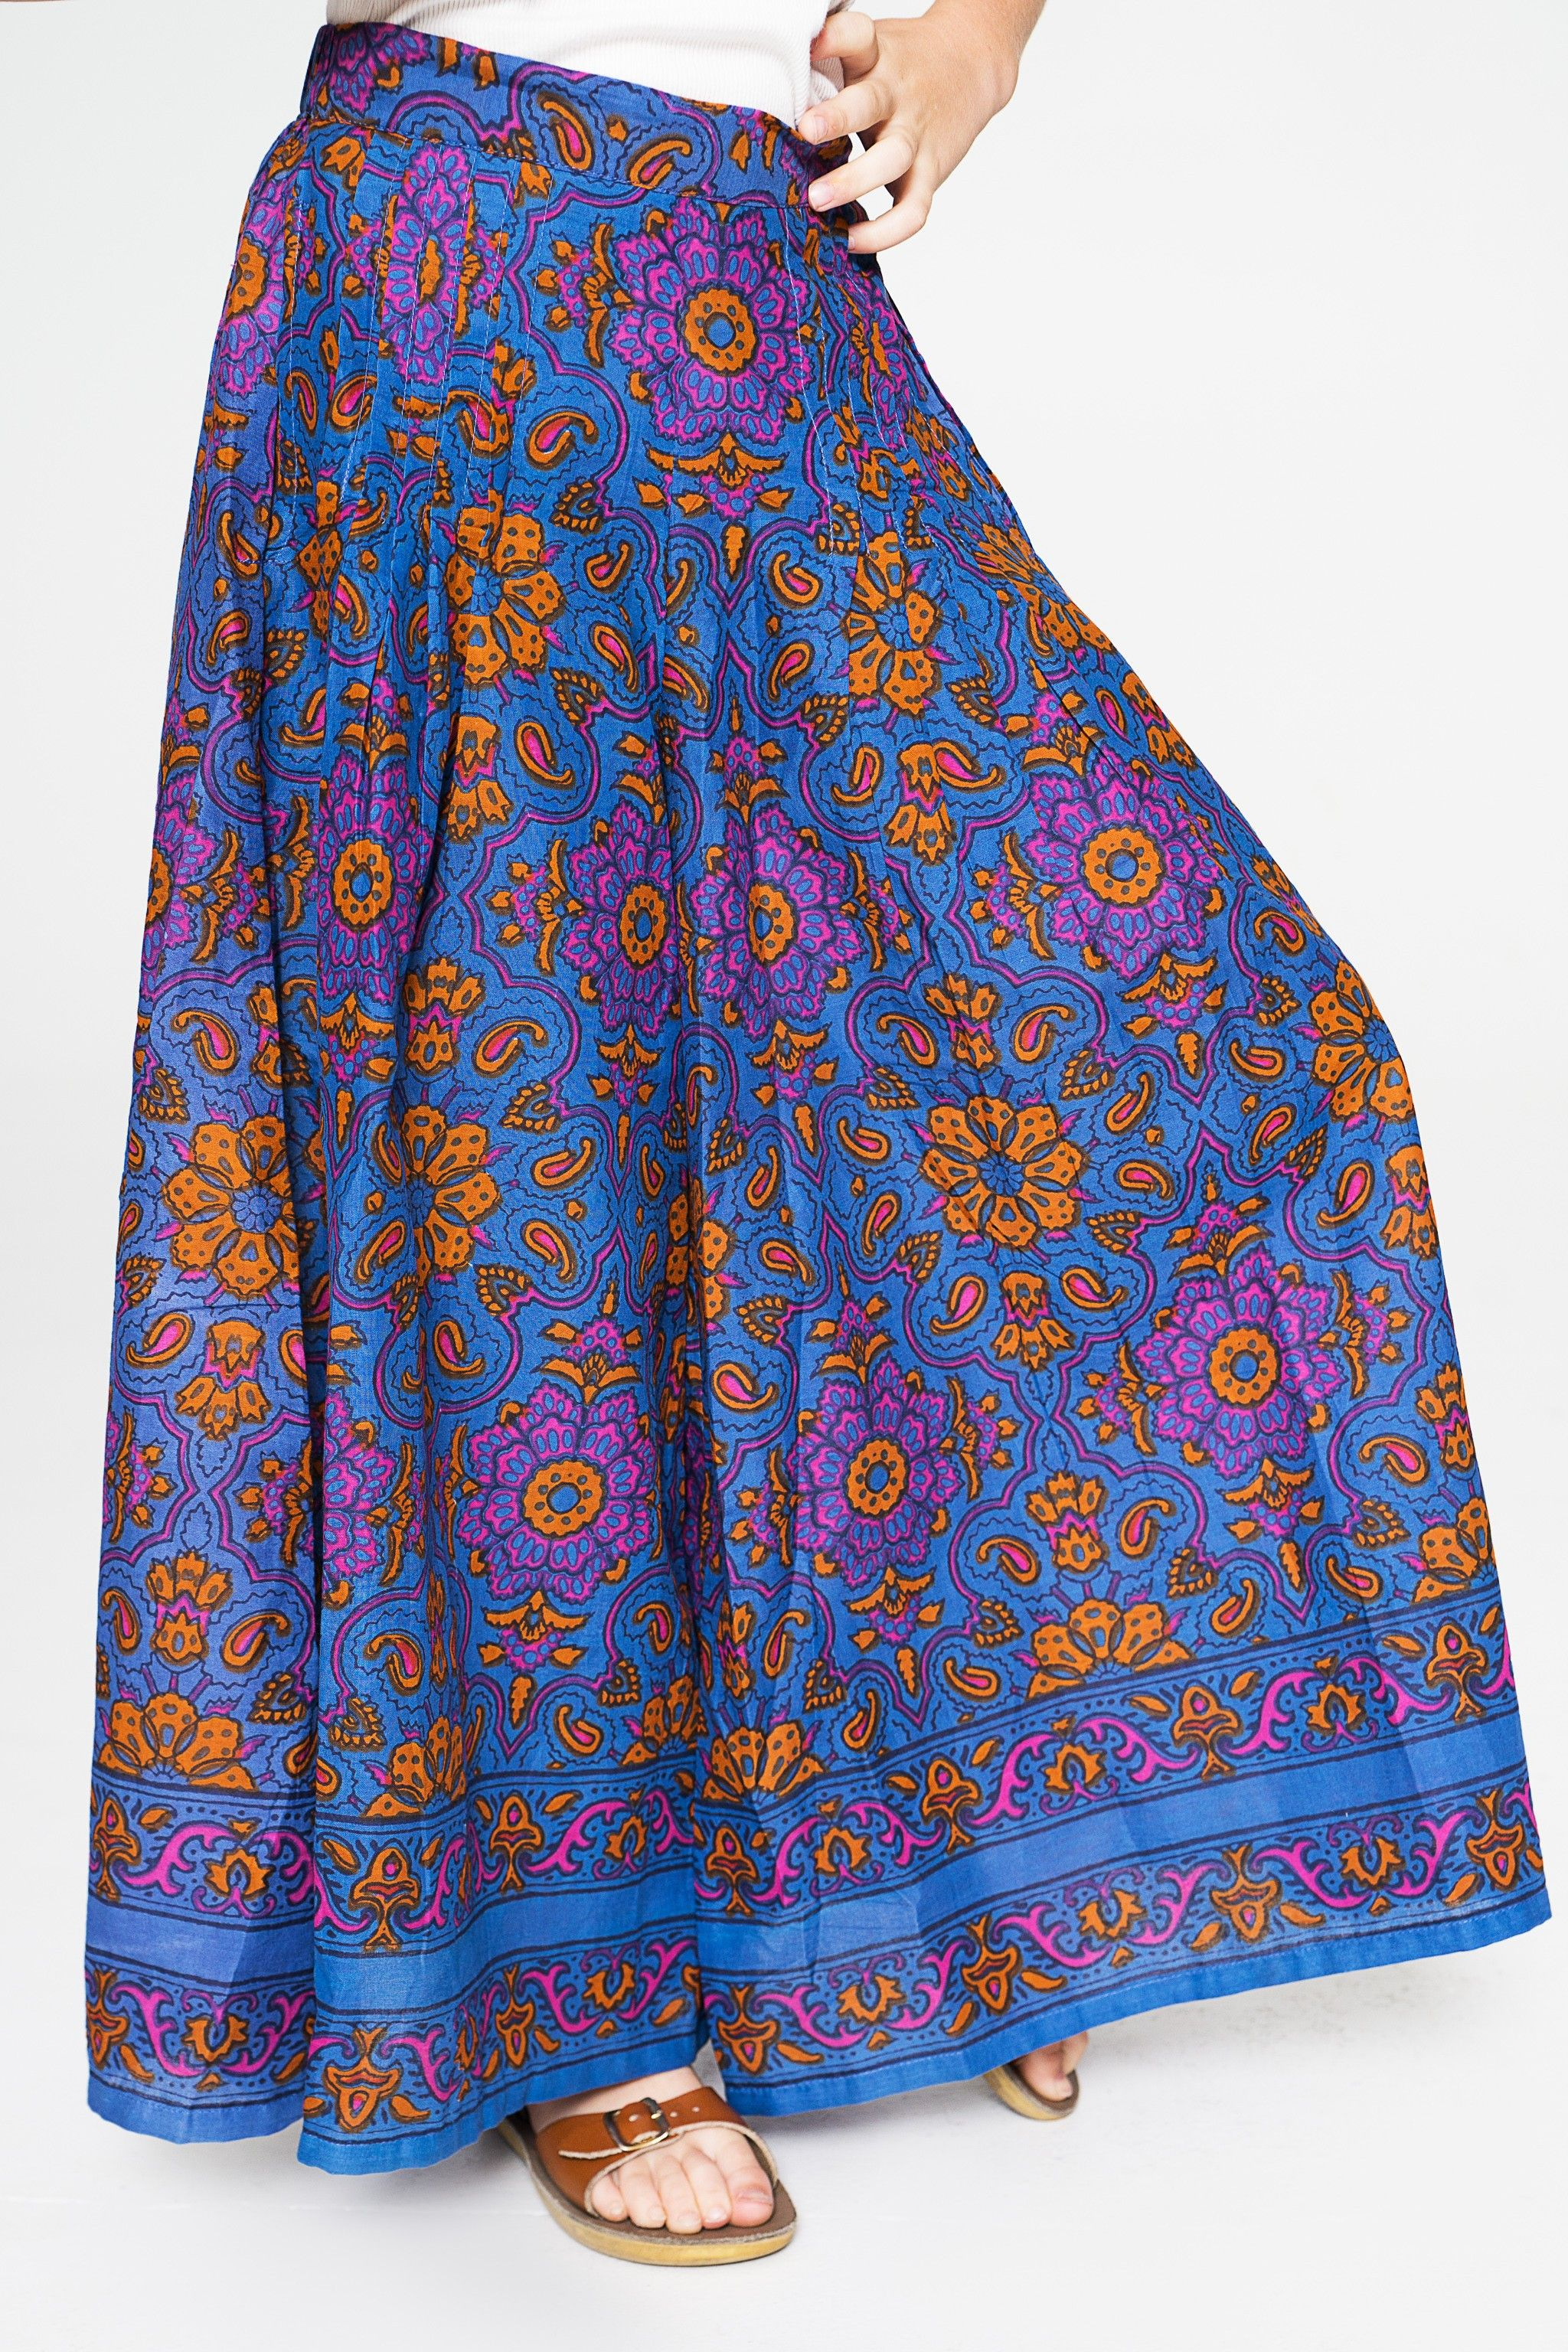 Blue And Purple Floral Ruched Palazzo Pants - Women - Yo Baby